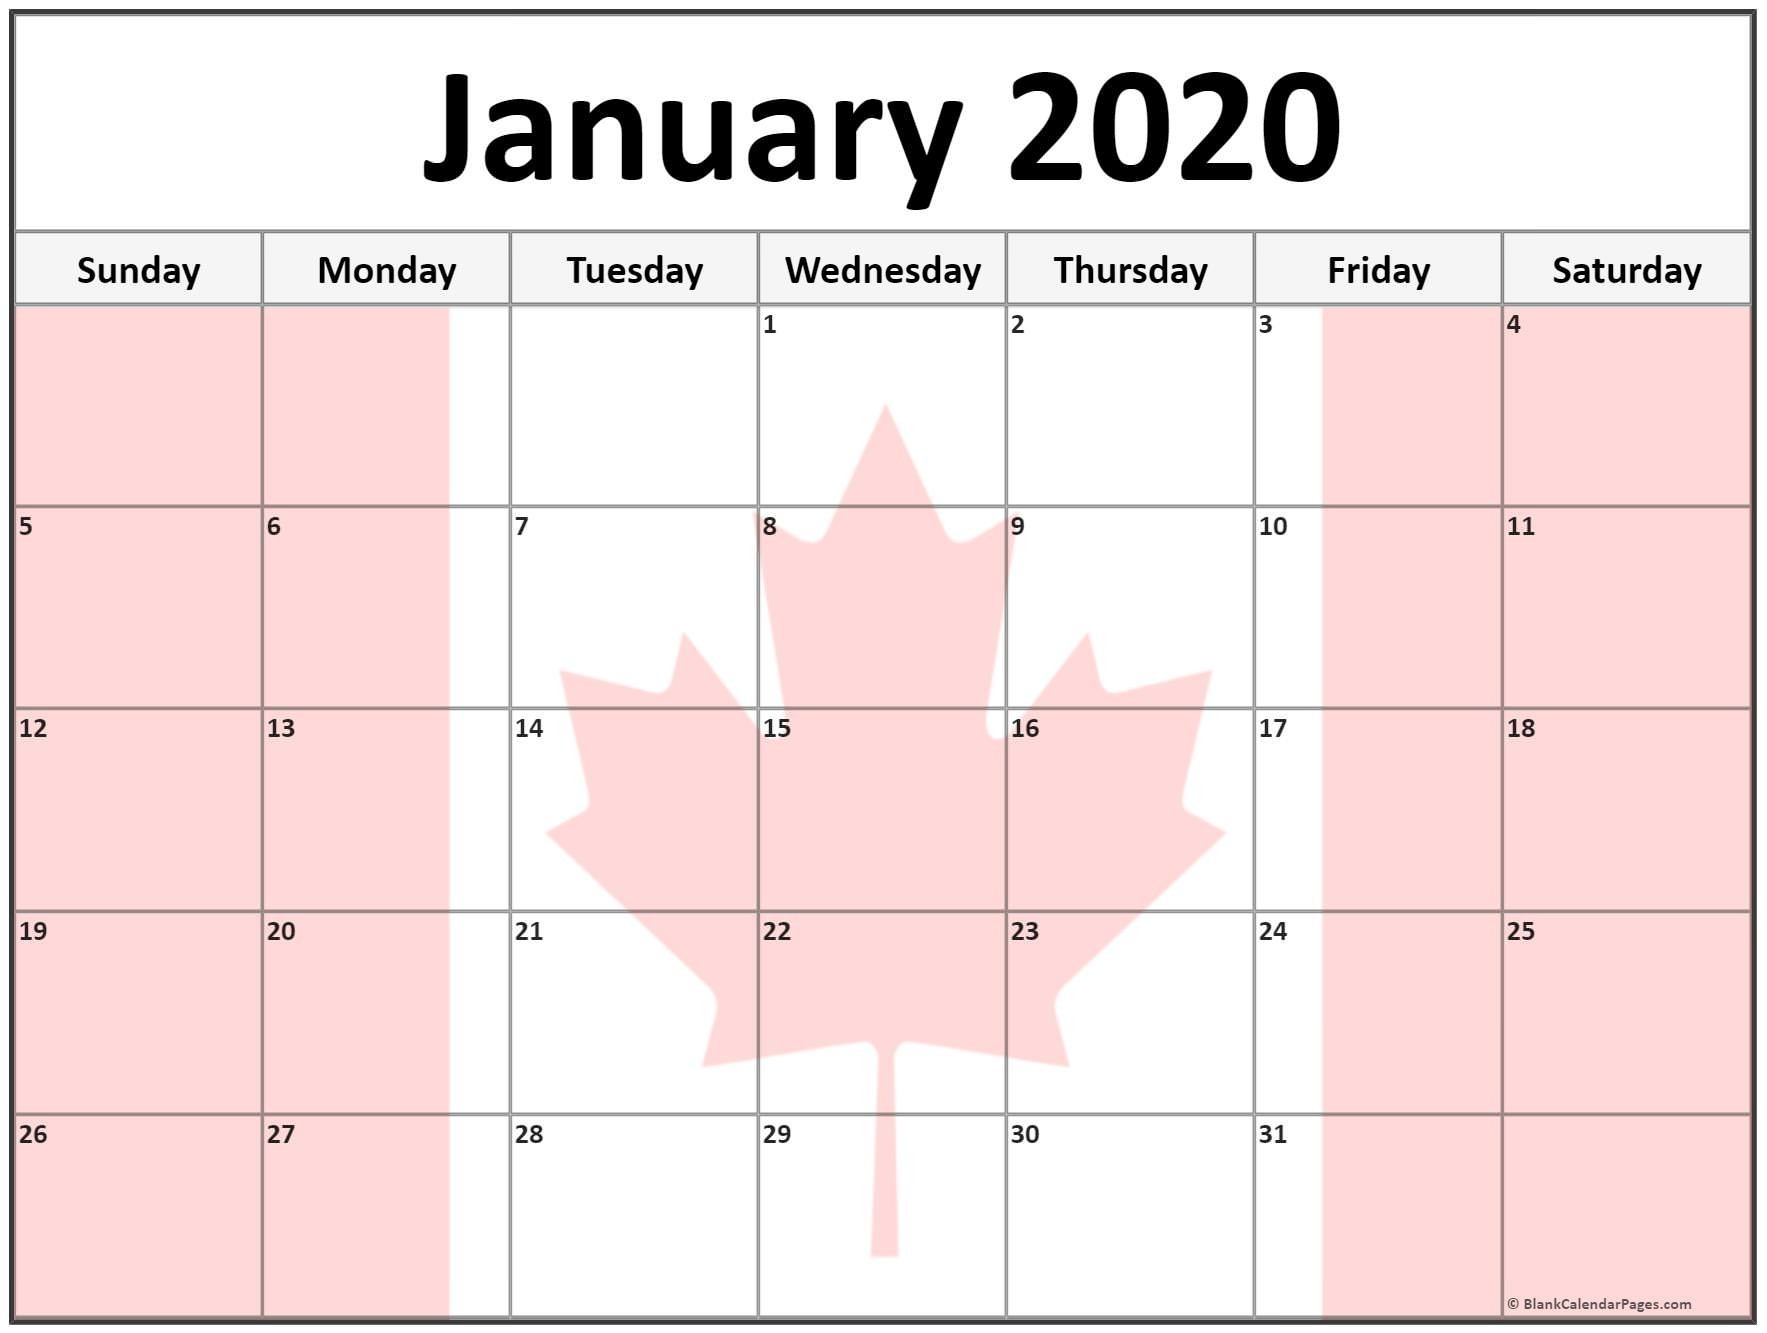 Collection Of January 2020 Photo Calendars With Image Filters.-January 2020 Canadian Calendar